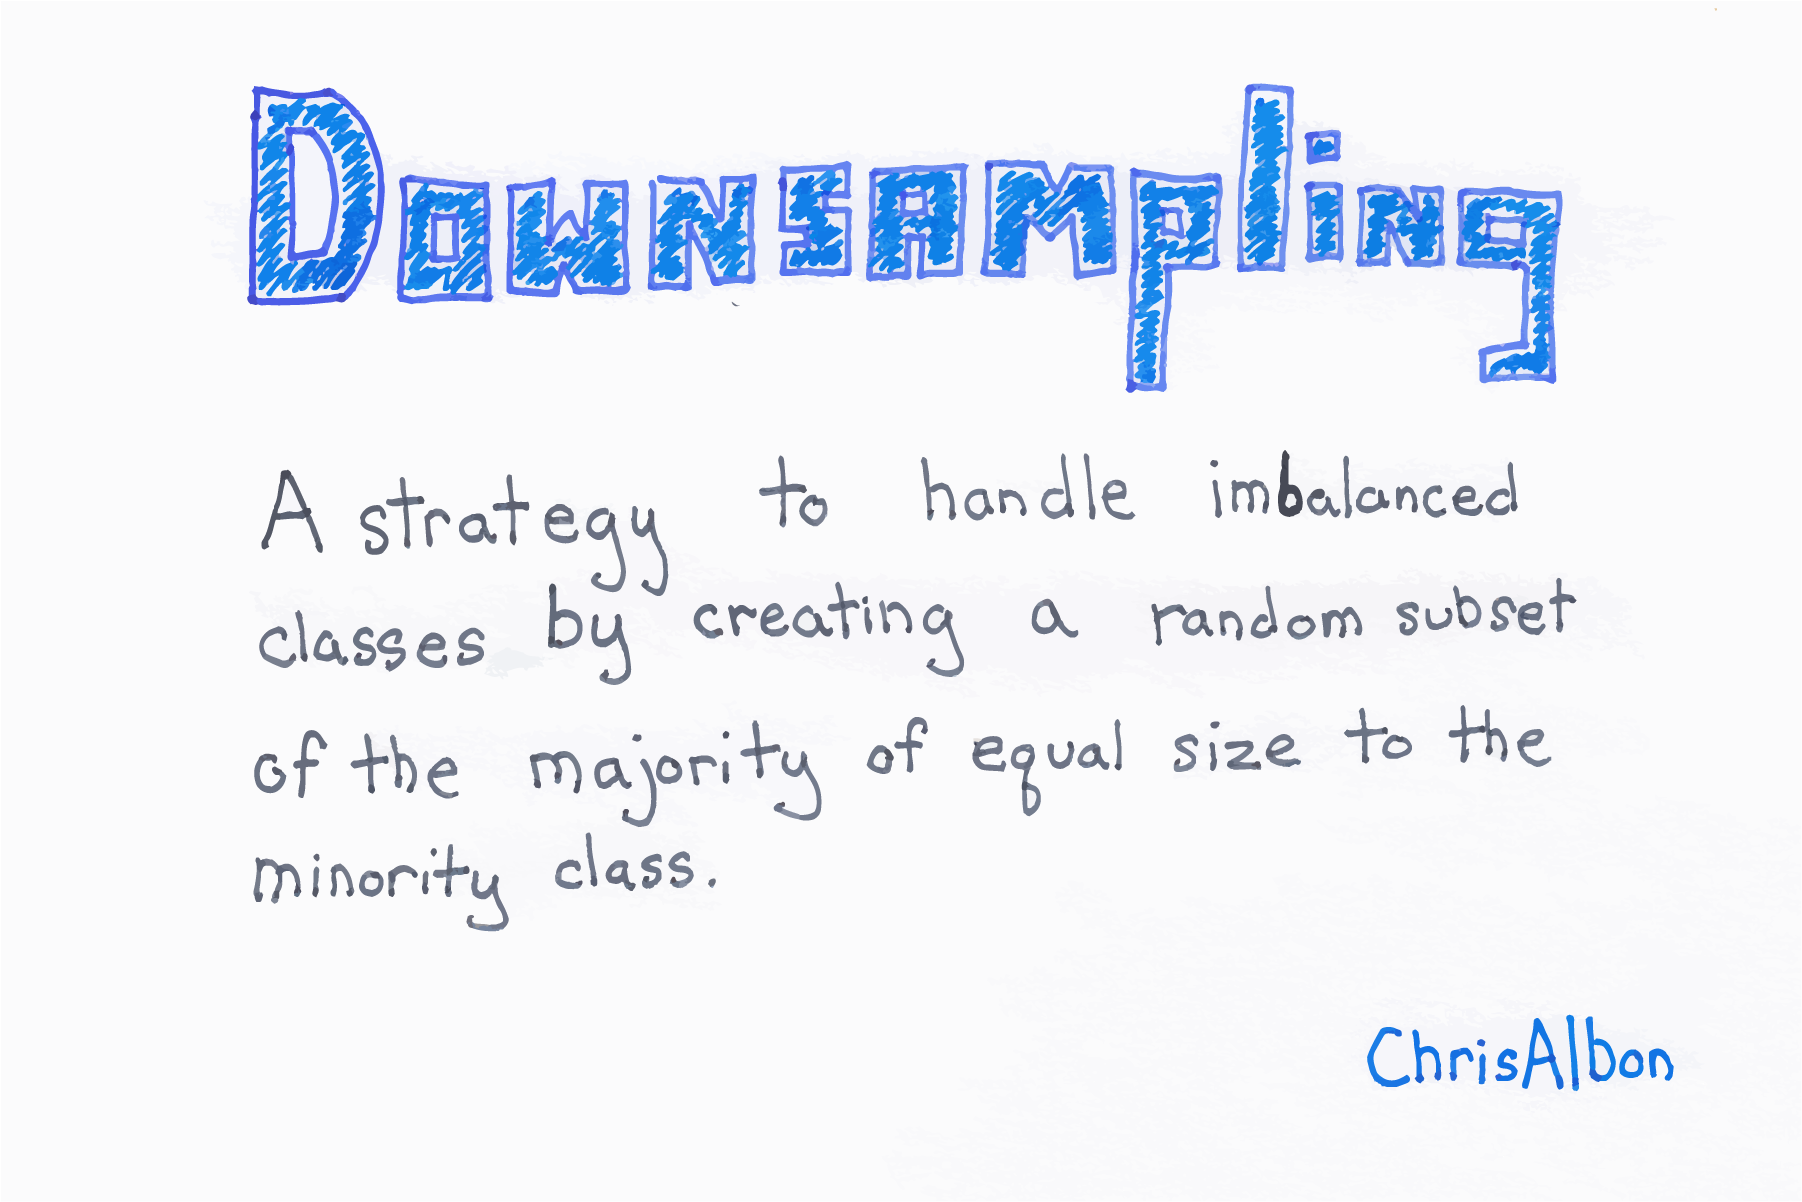 Handling Imbalanced Classes With Downsampling